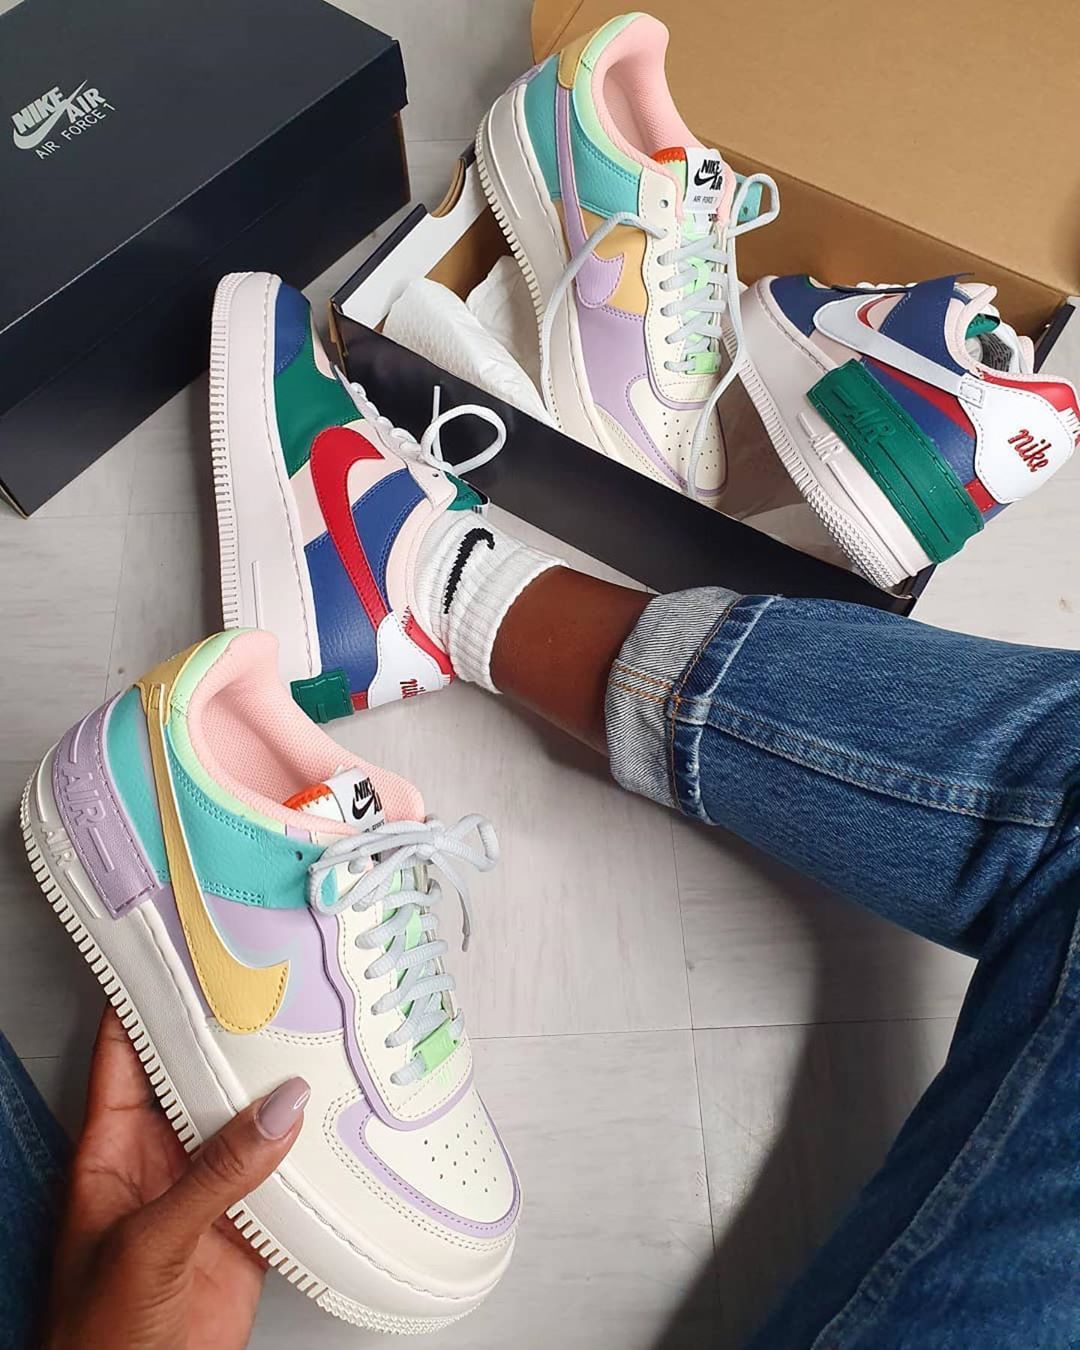 Nike Air Force 1 Shadow White Hydrogen Blue Purple Cw2630 141 Fashion Womens Casual Sneakers In 2020 Casual Shoes Women Casual Shoe Sneakers Nike Fashion Shoes Brand new nike air force 1 vlone friends and family black blue purple size 11. casual shoe sneakers nike fashion shoes